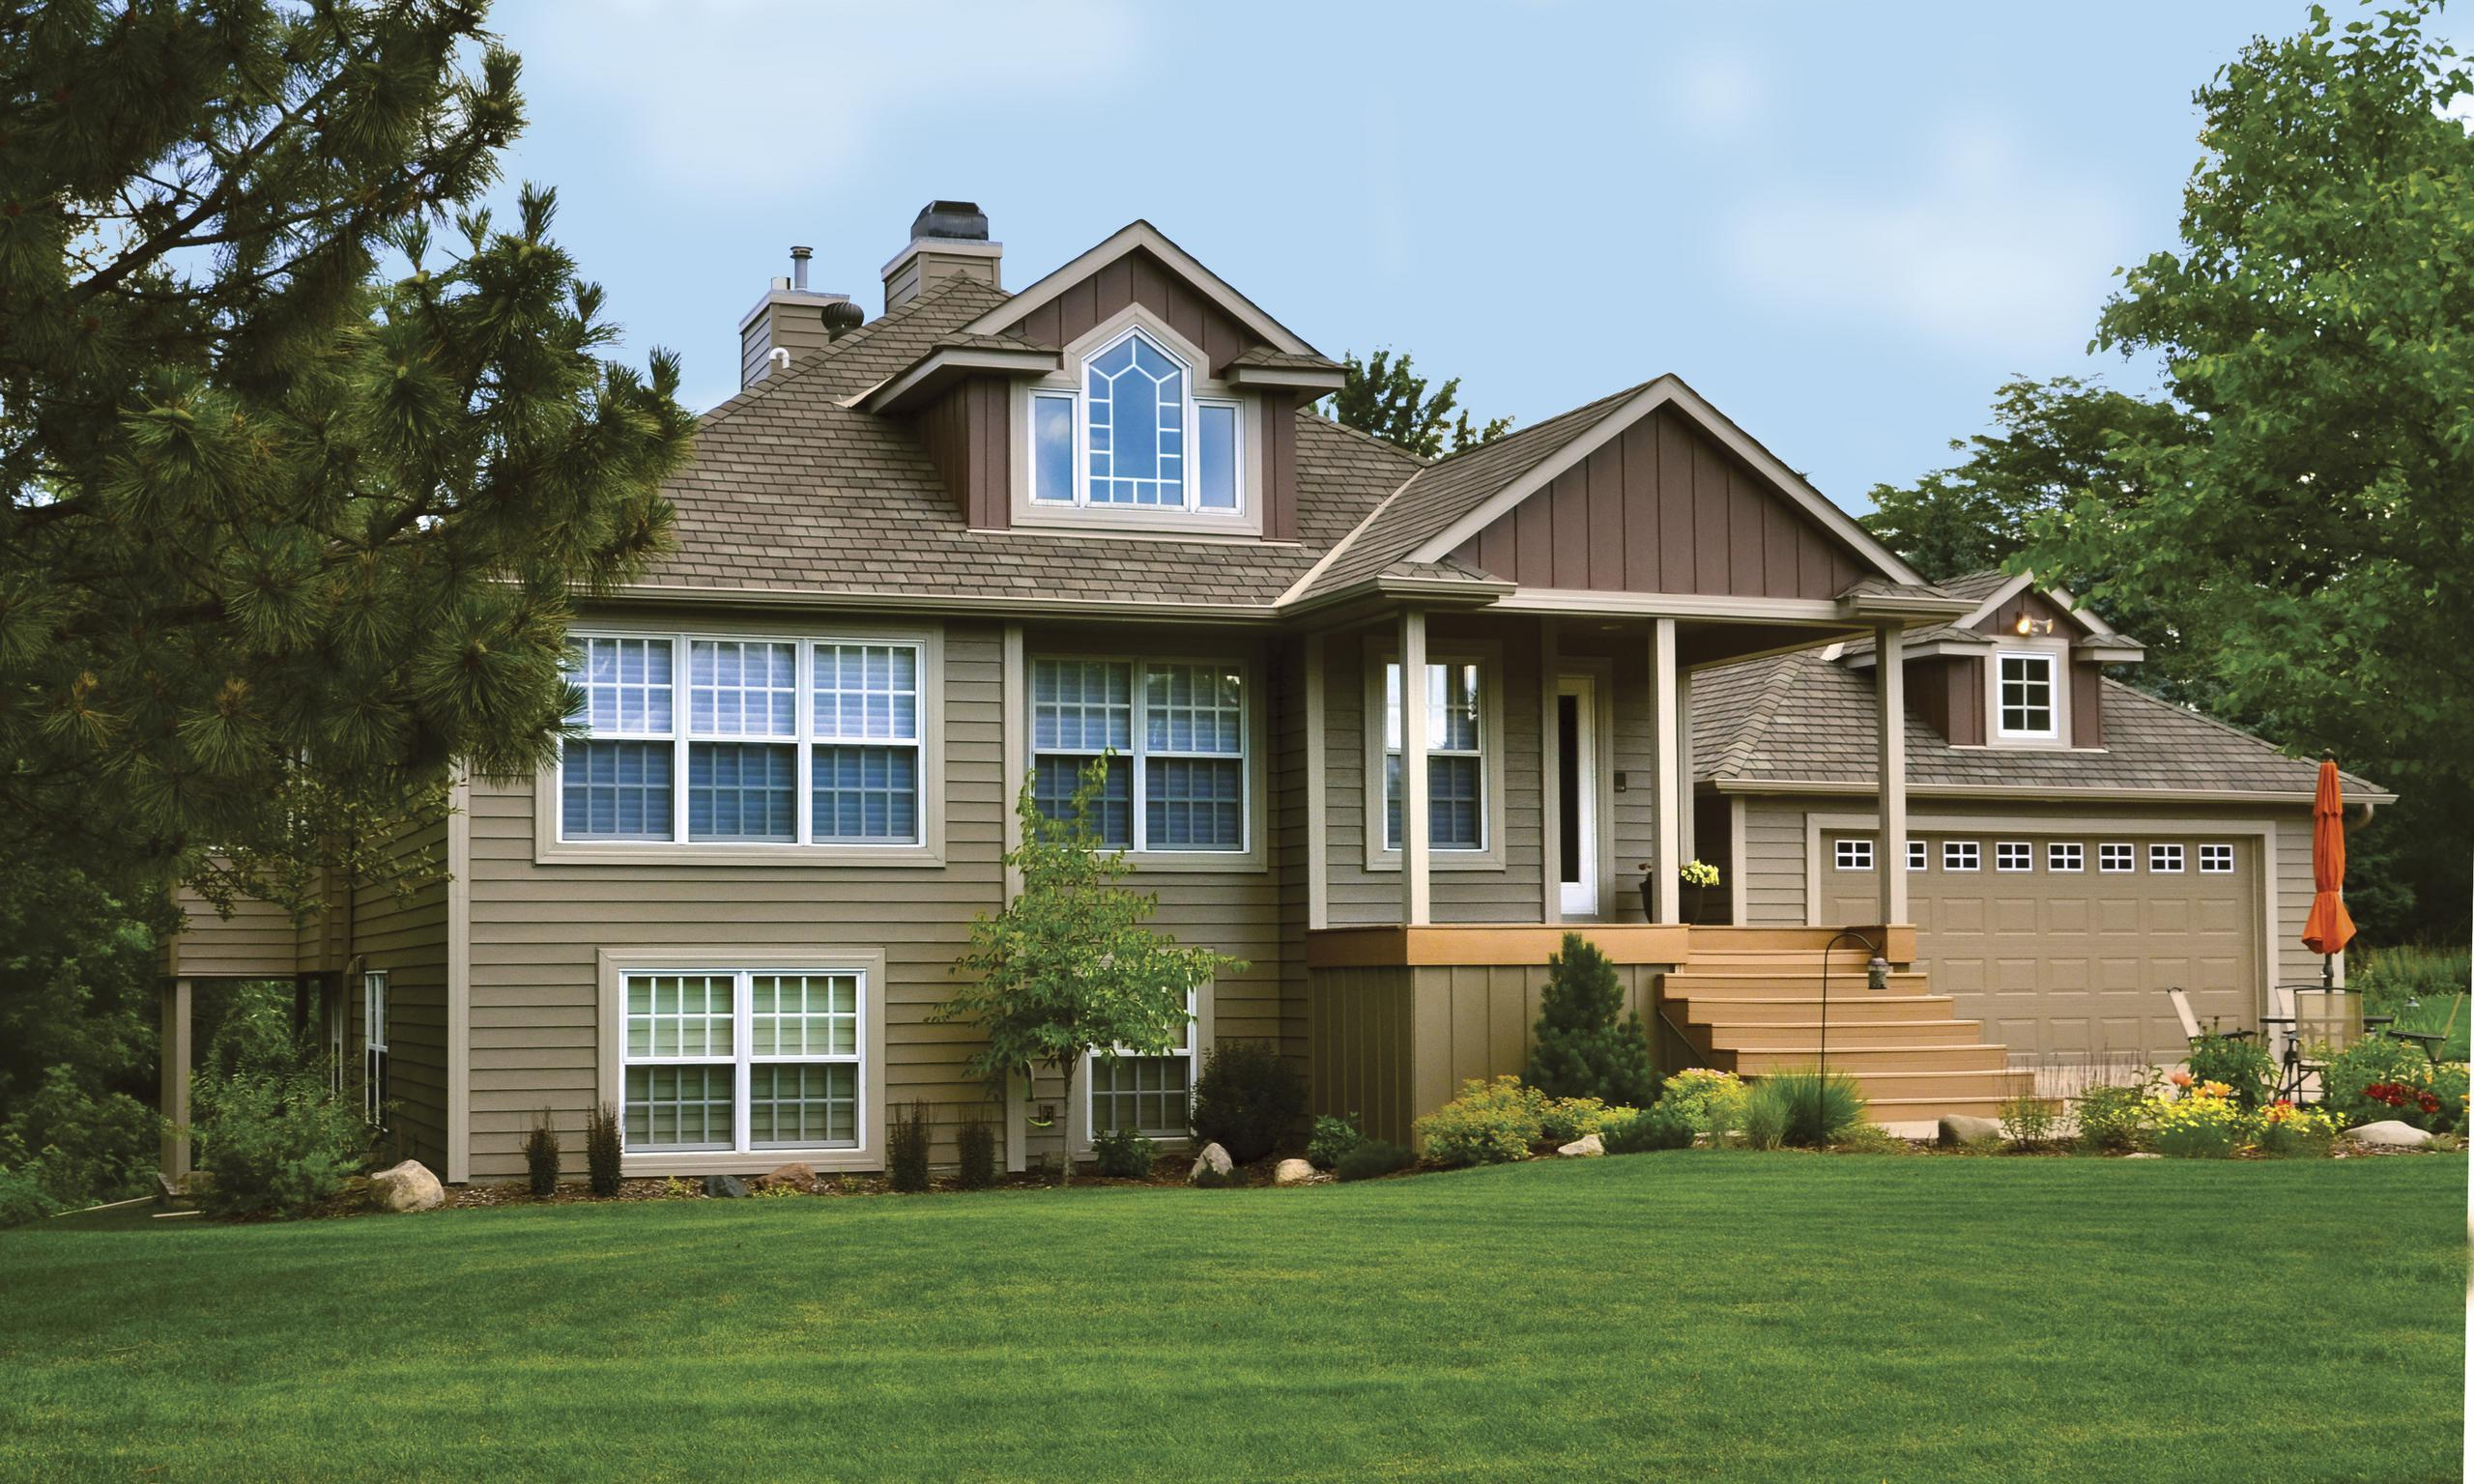 "Vertical 12"" Board and Batten in Mahogany gives this home beauty as it color-coordinates with EDCO's Single 6"" Traditional Lap Siding and Soffit, Fascia and Trim which is also from EDCO"